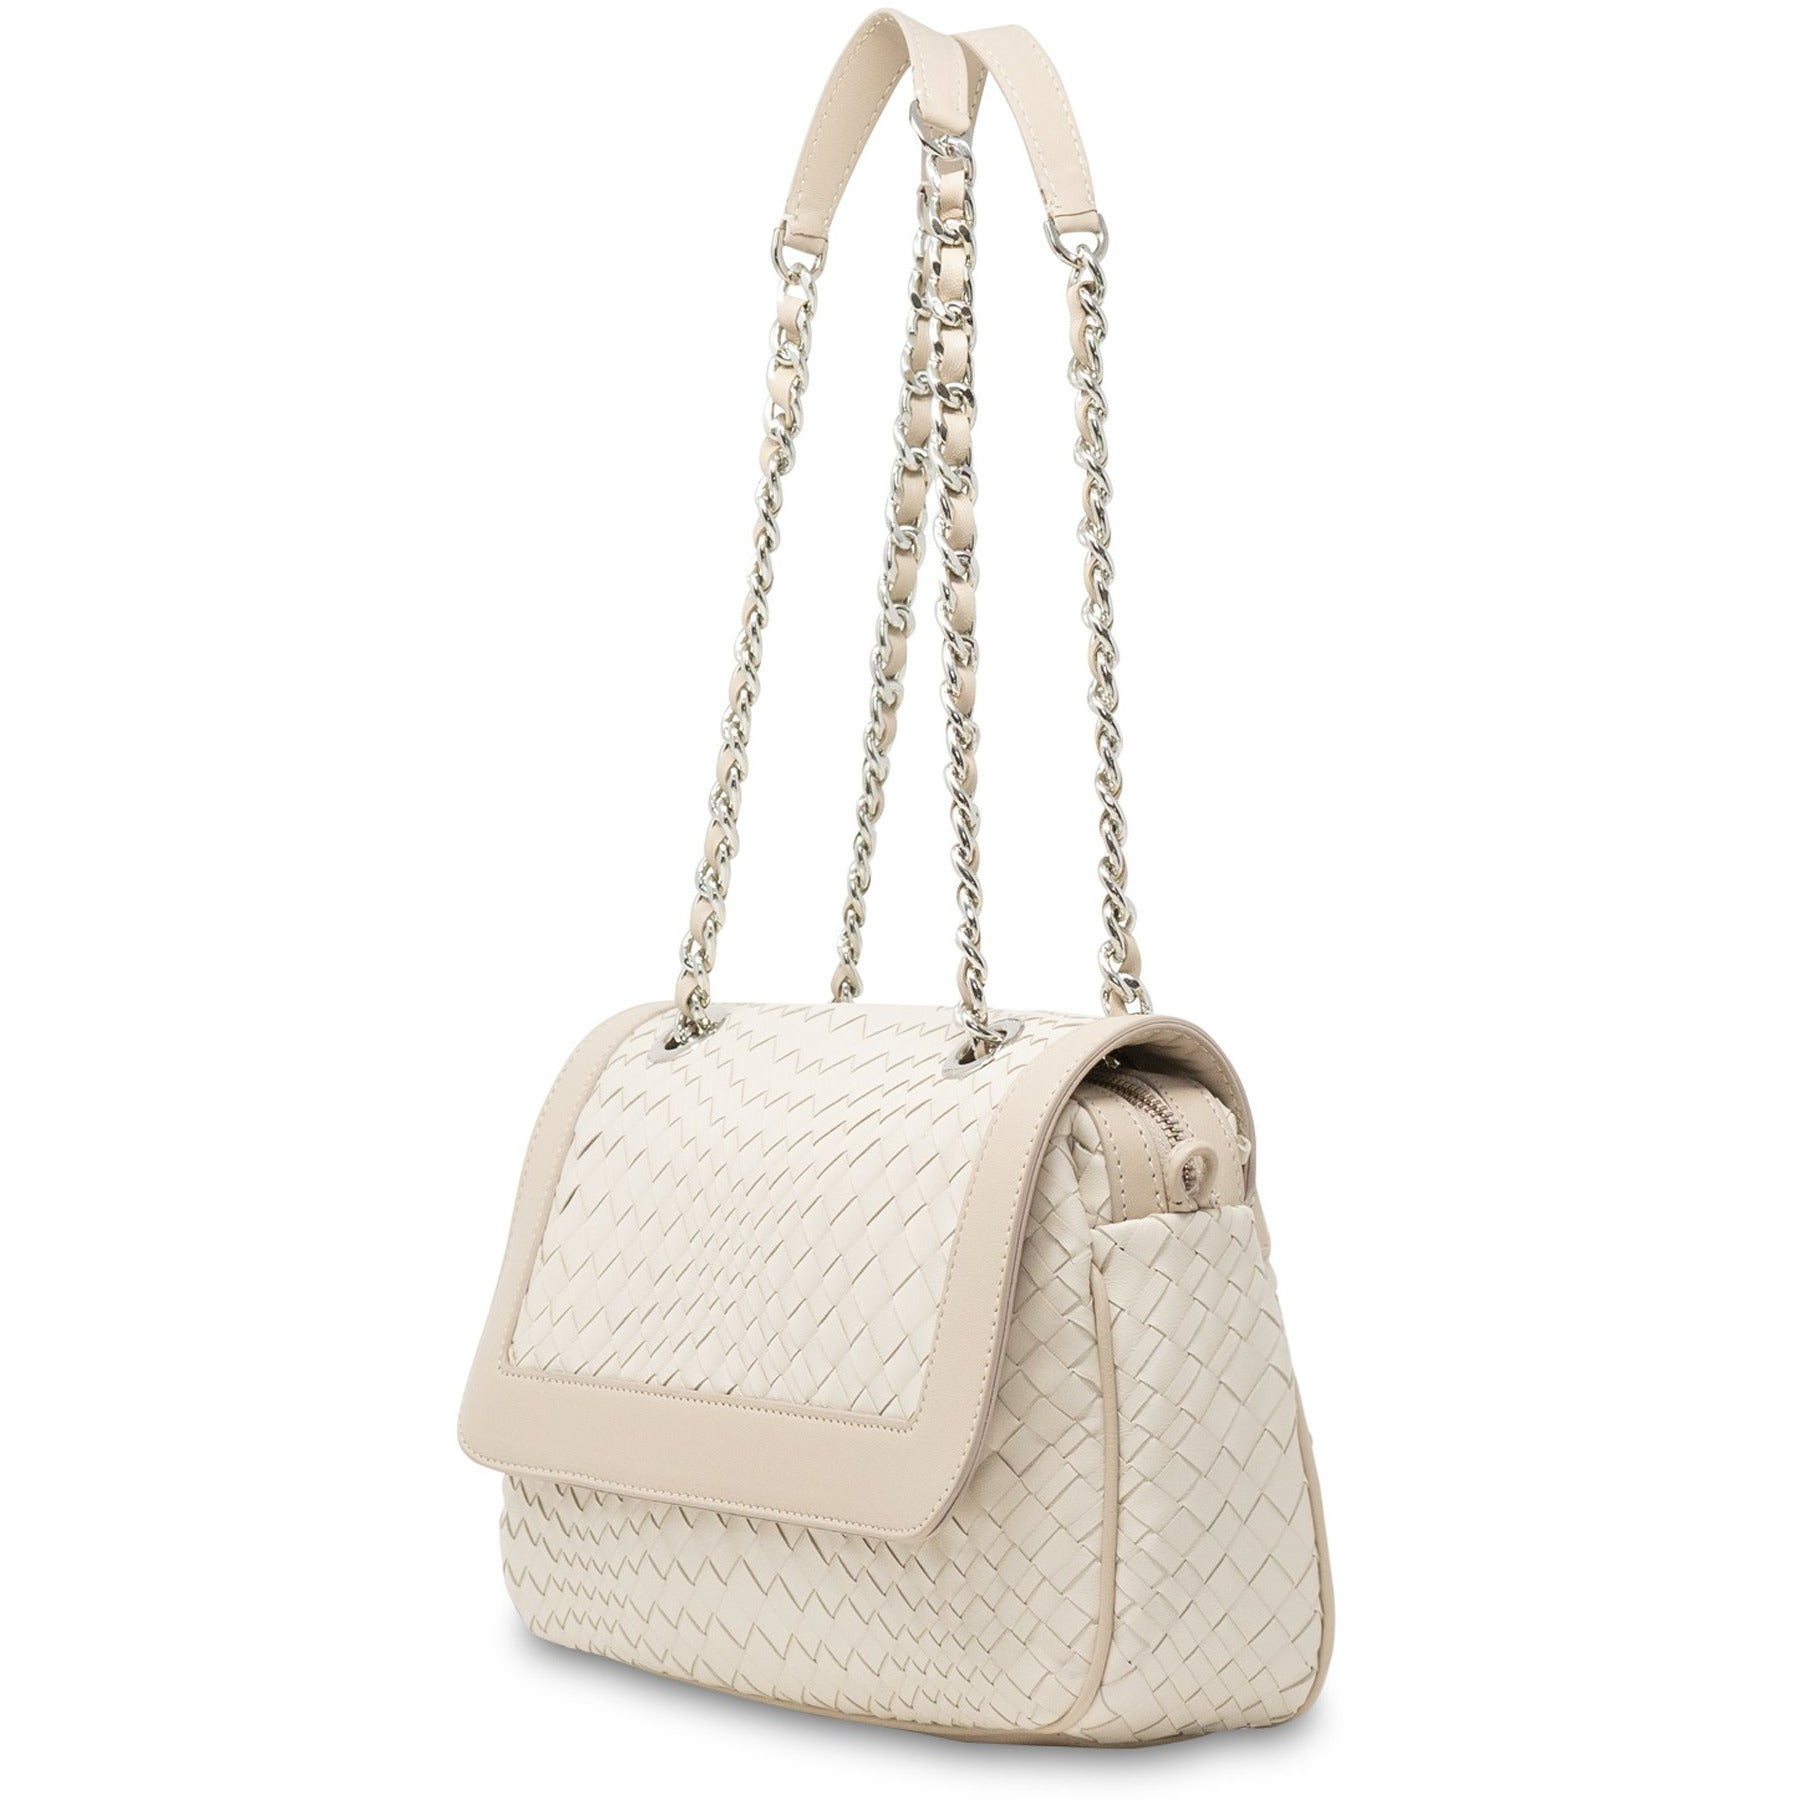 JT313 5571 32 Intrecciato Optical Leather Shoulder Bag in Beige Nappa - Jennifer Tattanelli